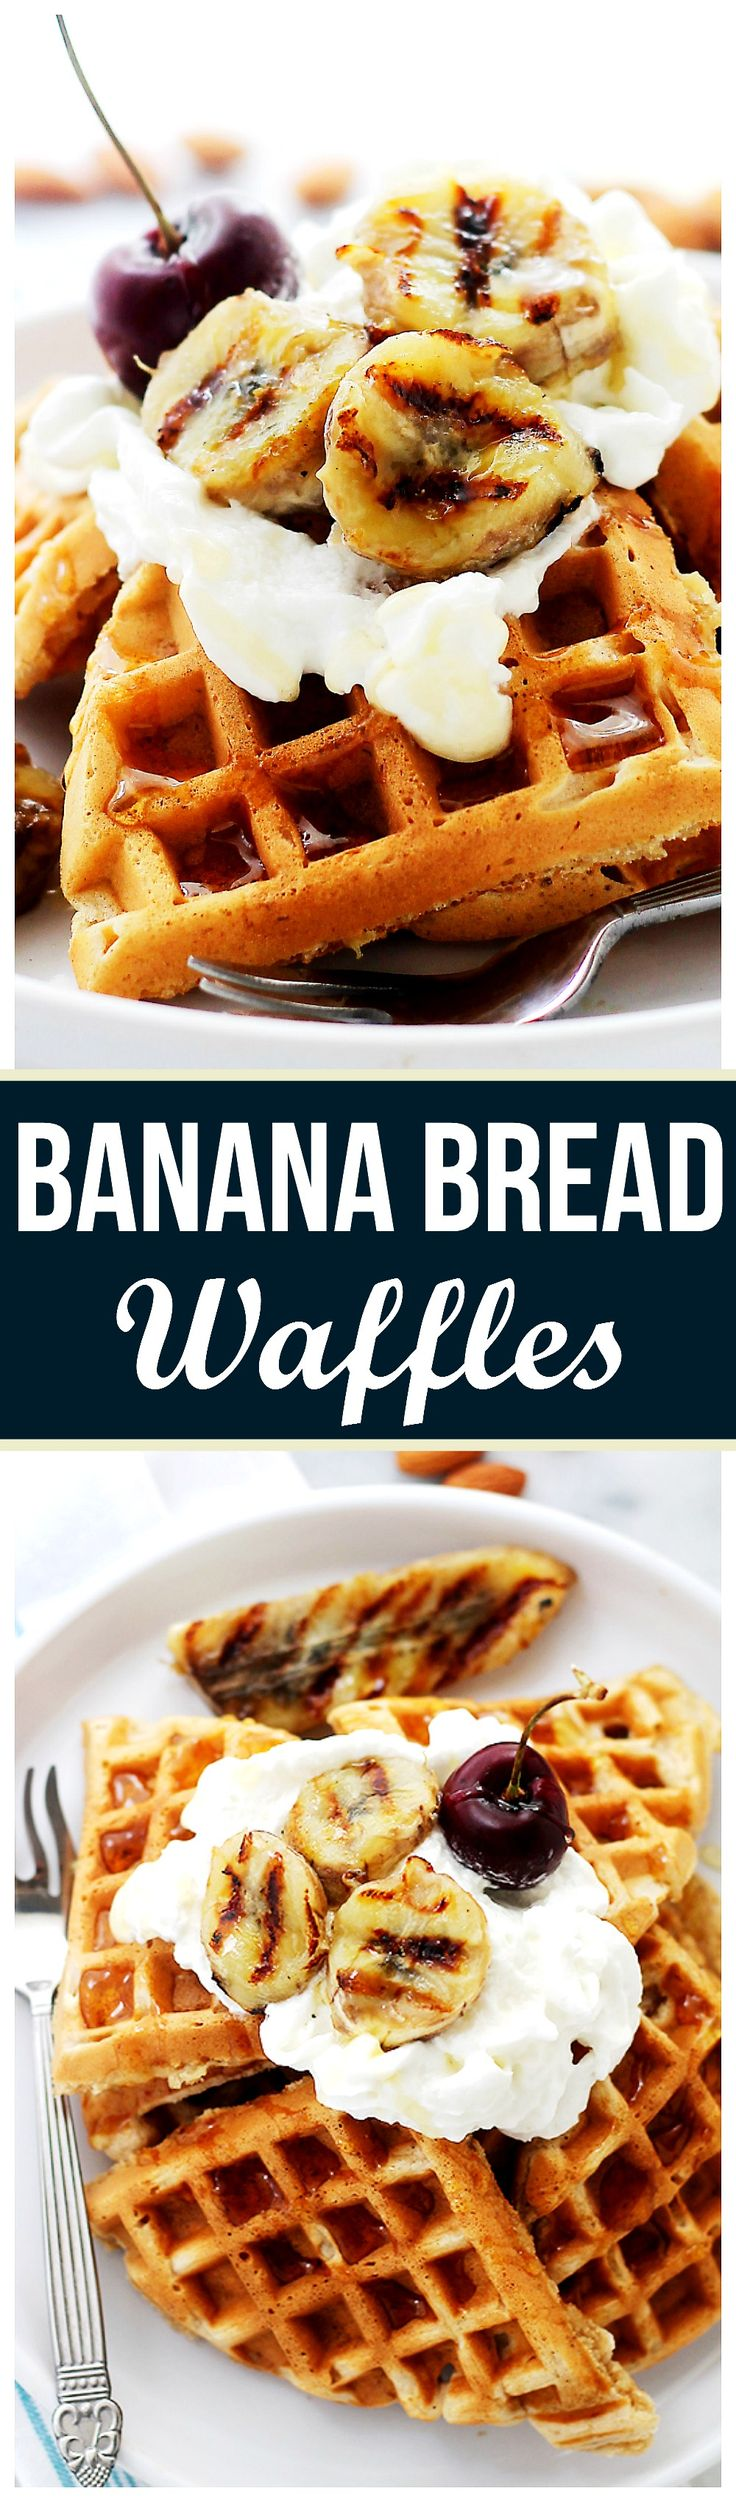 Banana Bread Waffles | www.diethood.com | The sweet and delicious taste of Banana Bread in a Waffle!